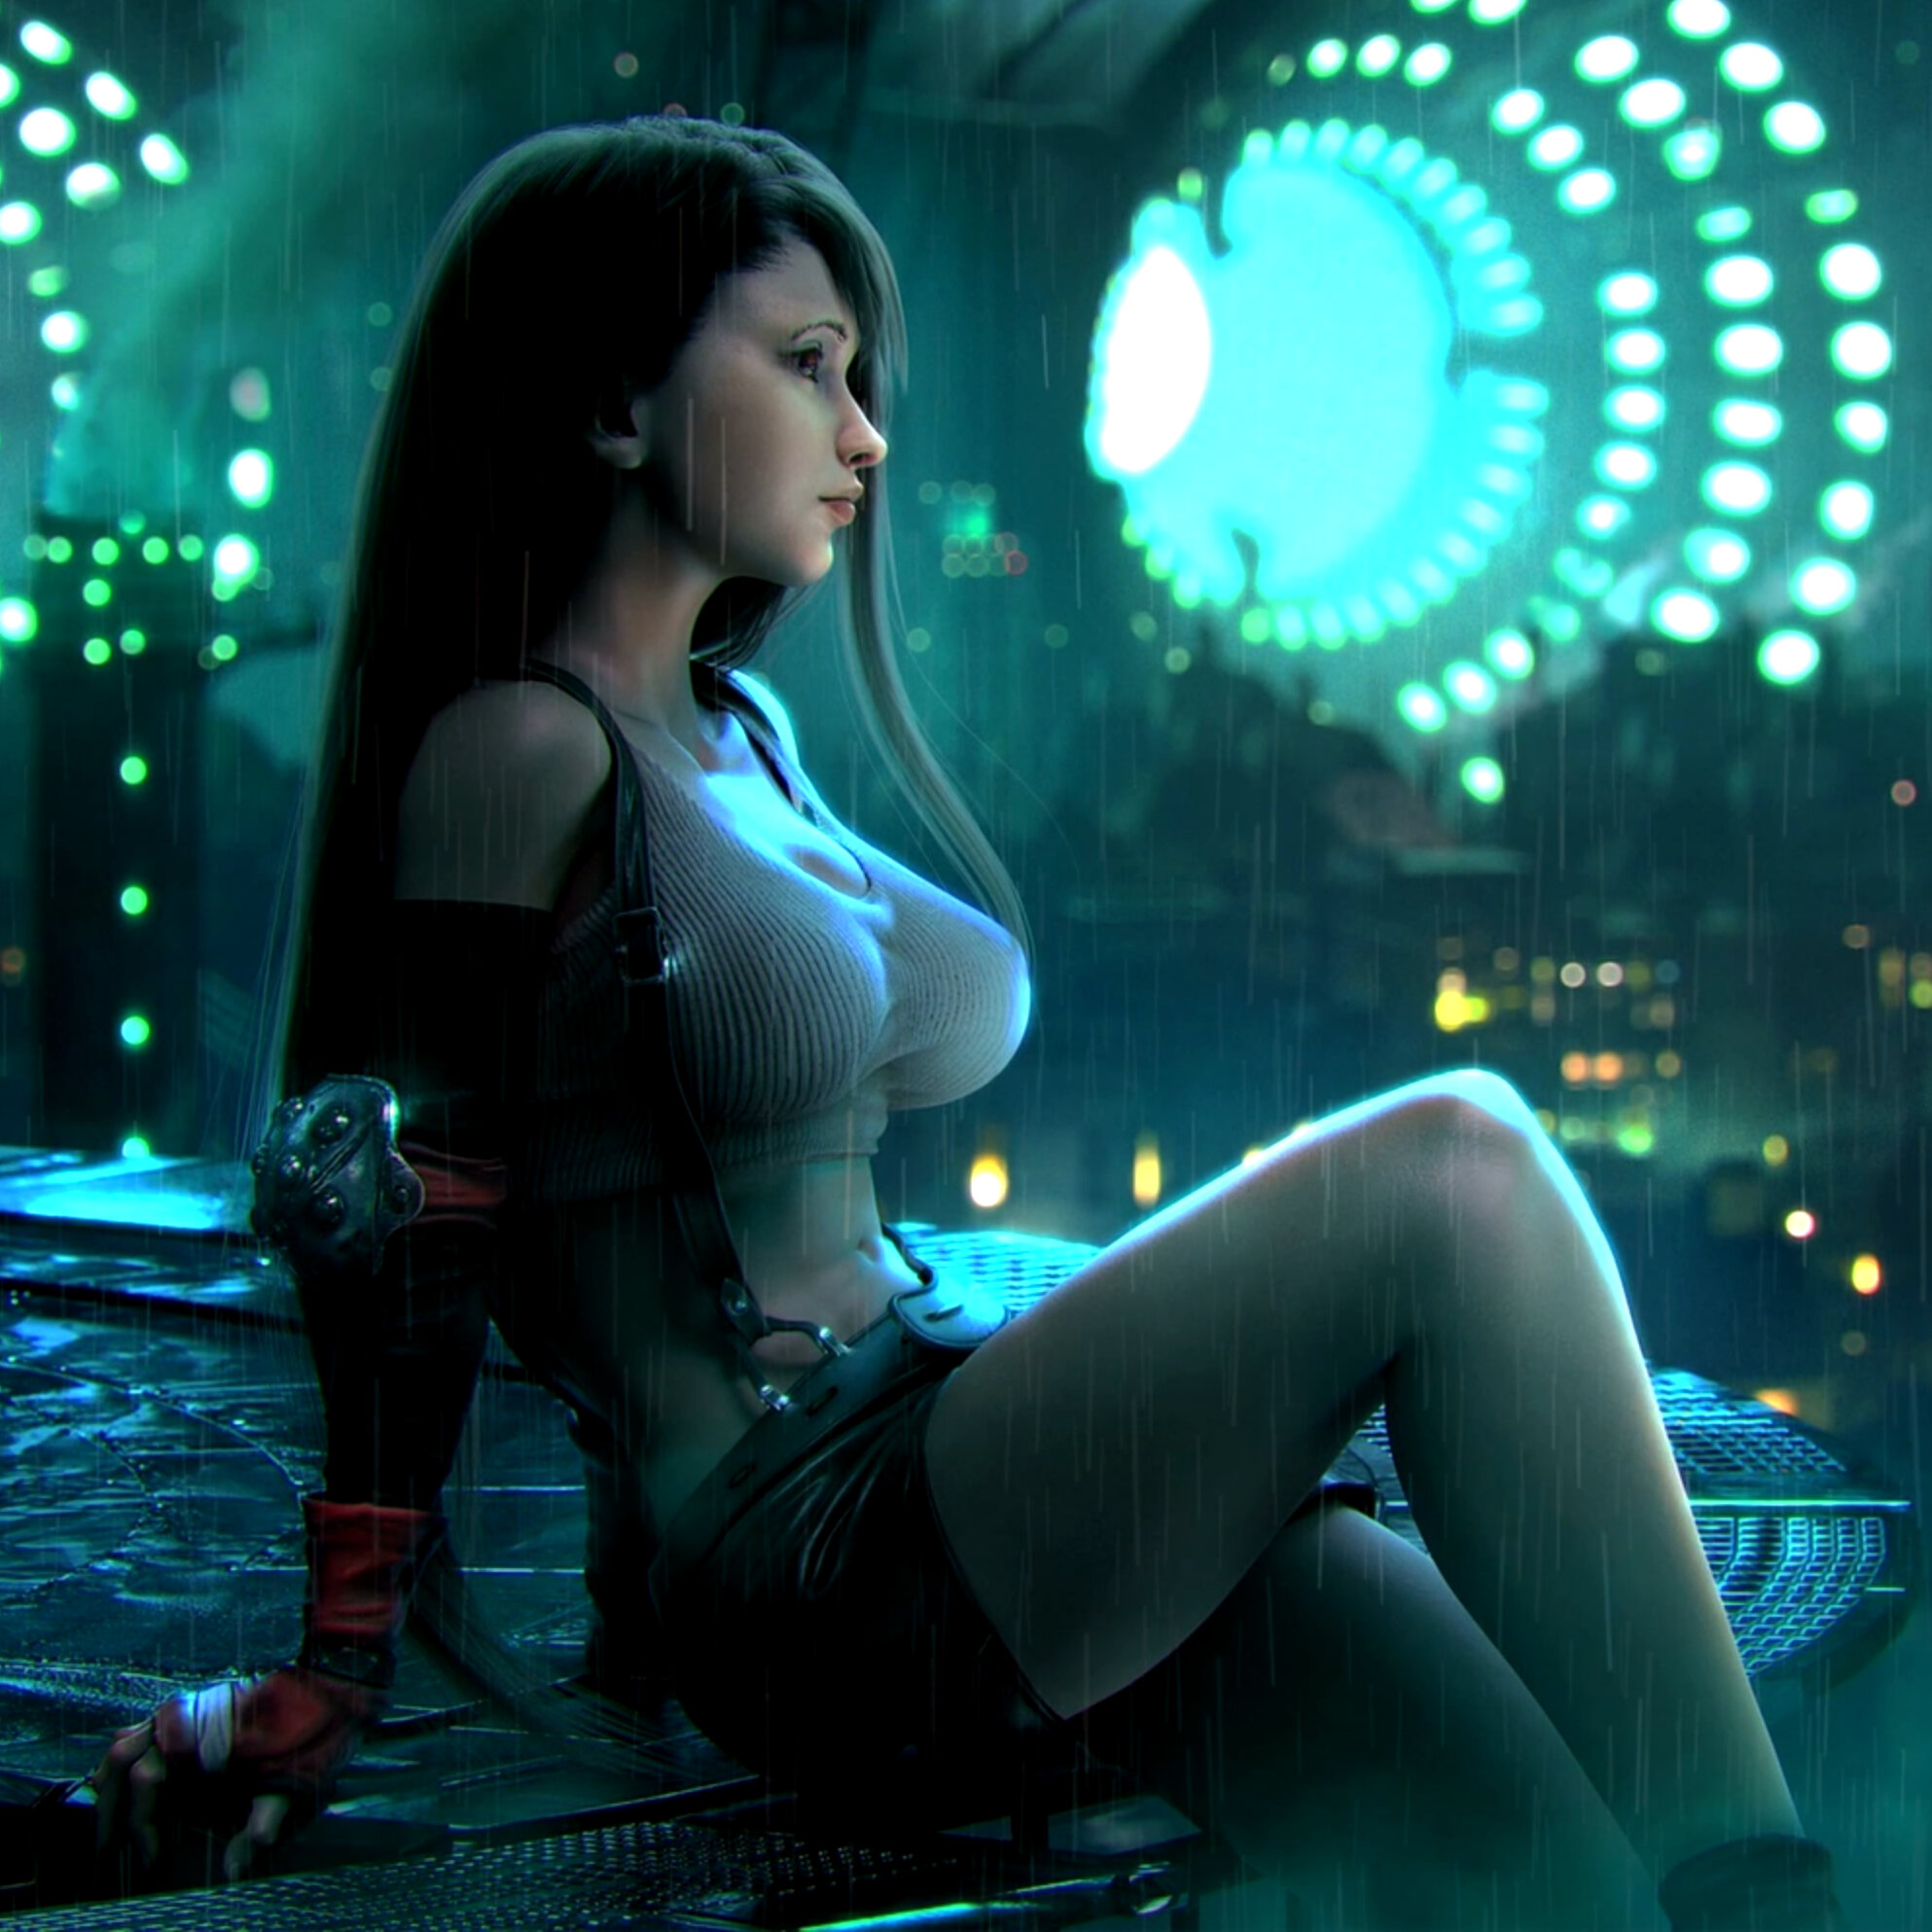 Steam Workshop Tifa Lockheart Rendered In 4k 1080p